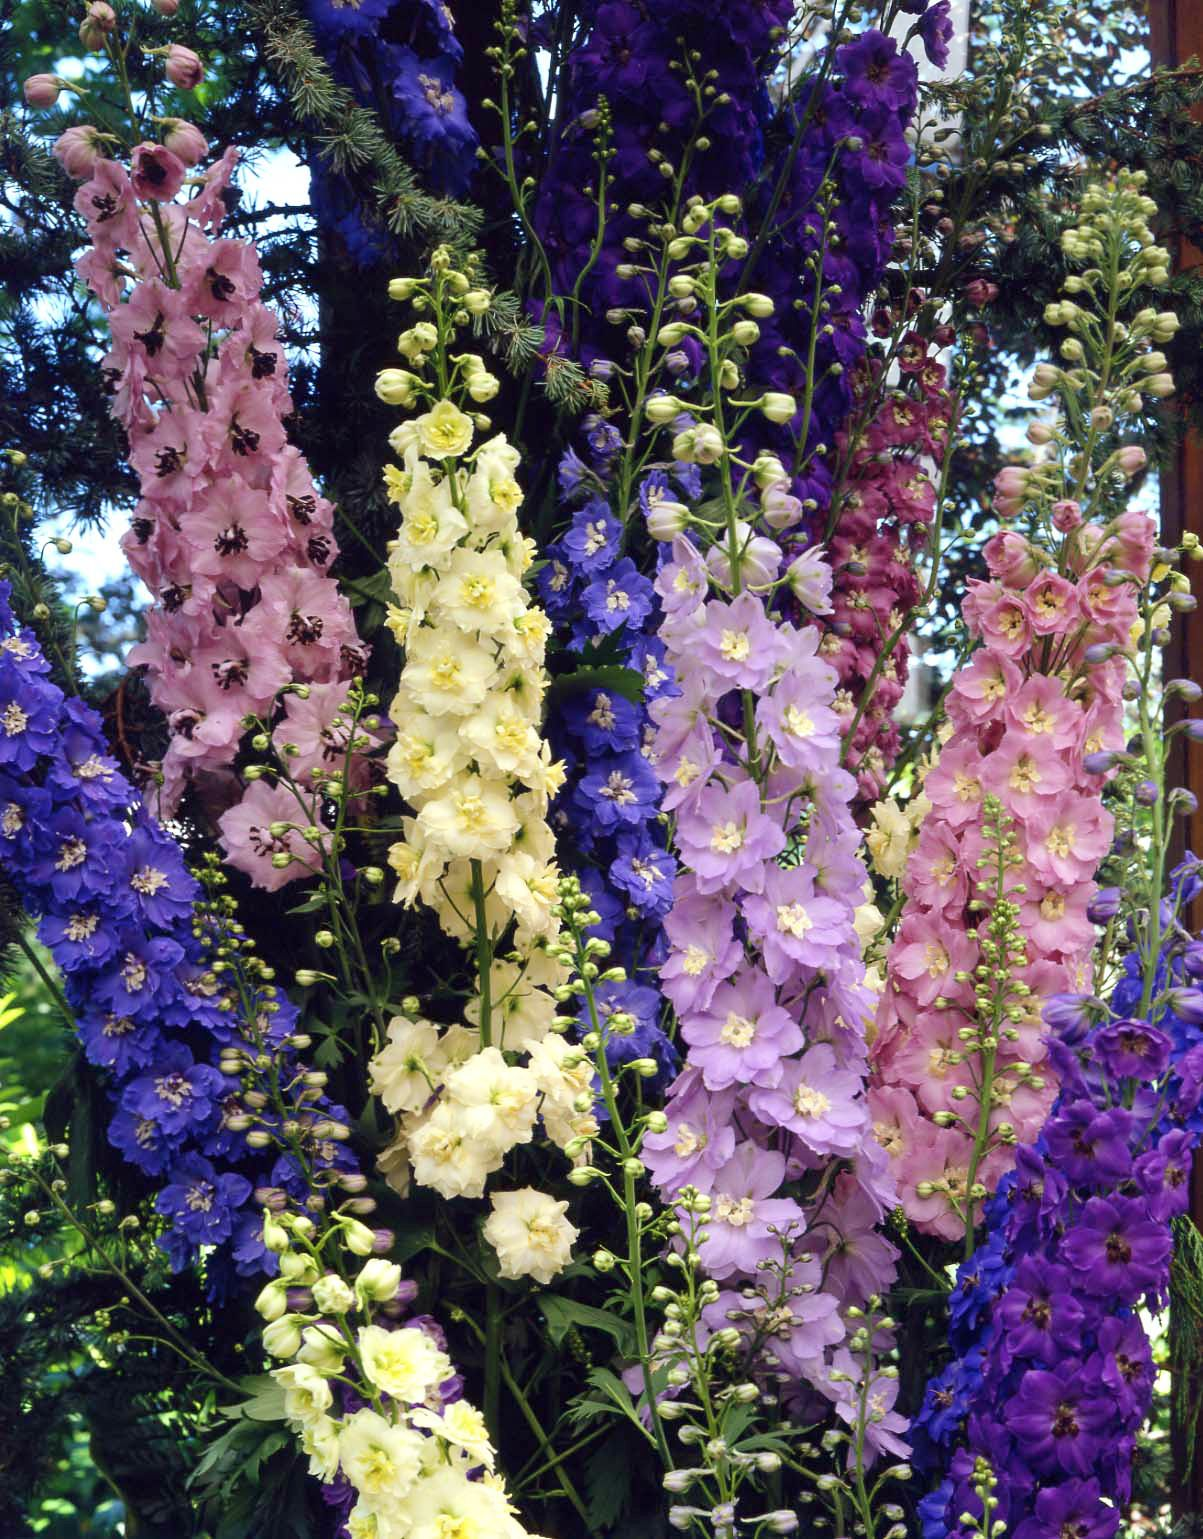 Delphiniums Are A Staple Of The Traditional Cottage Garden Look The Lovely Tall Flower Spikes Are A Feast For T Delphinium Flowers Tall Flowers Garden Vines